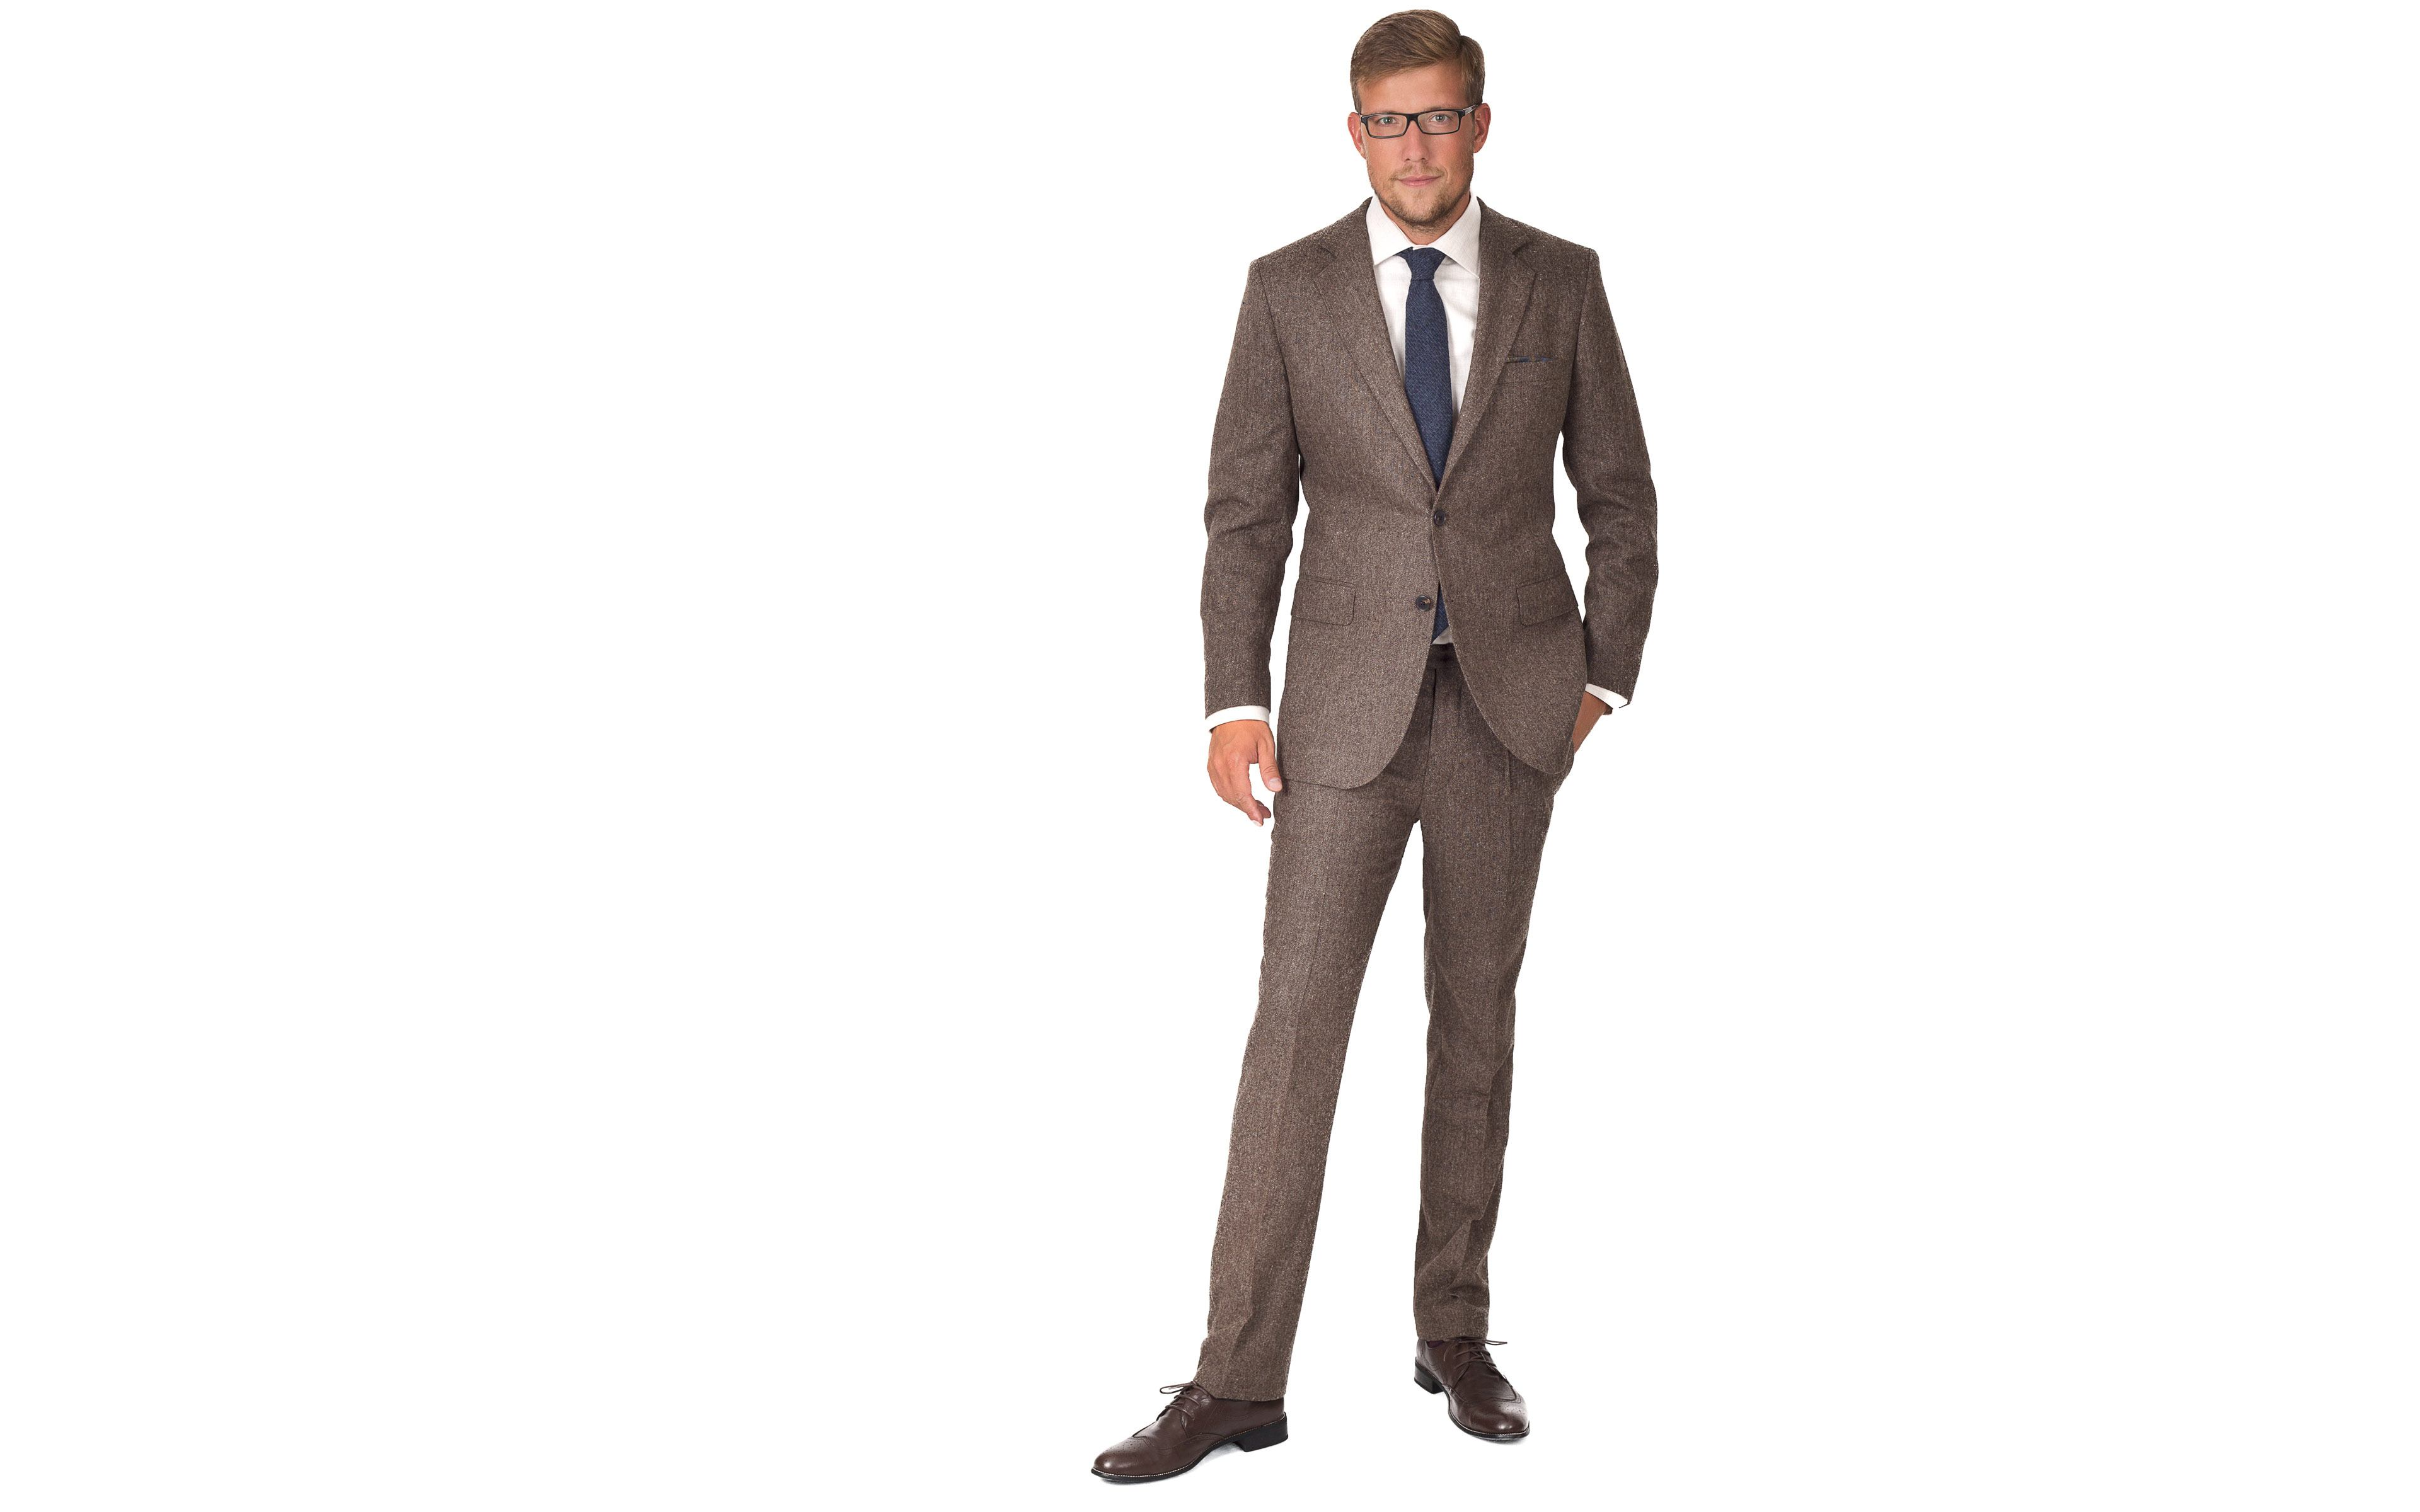 Suit in Natural Brown Tweed